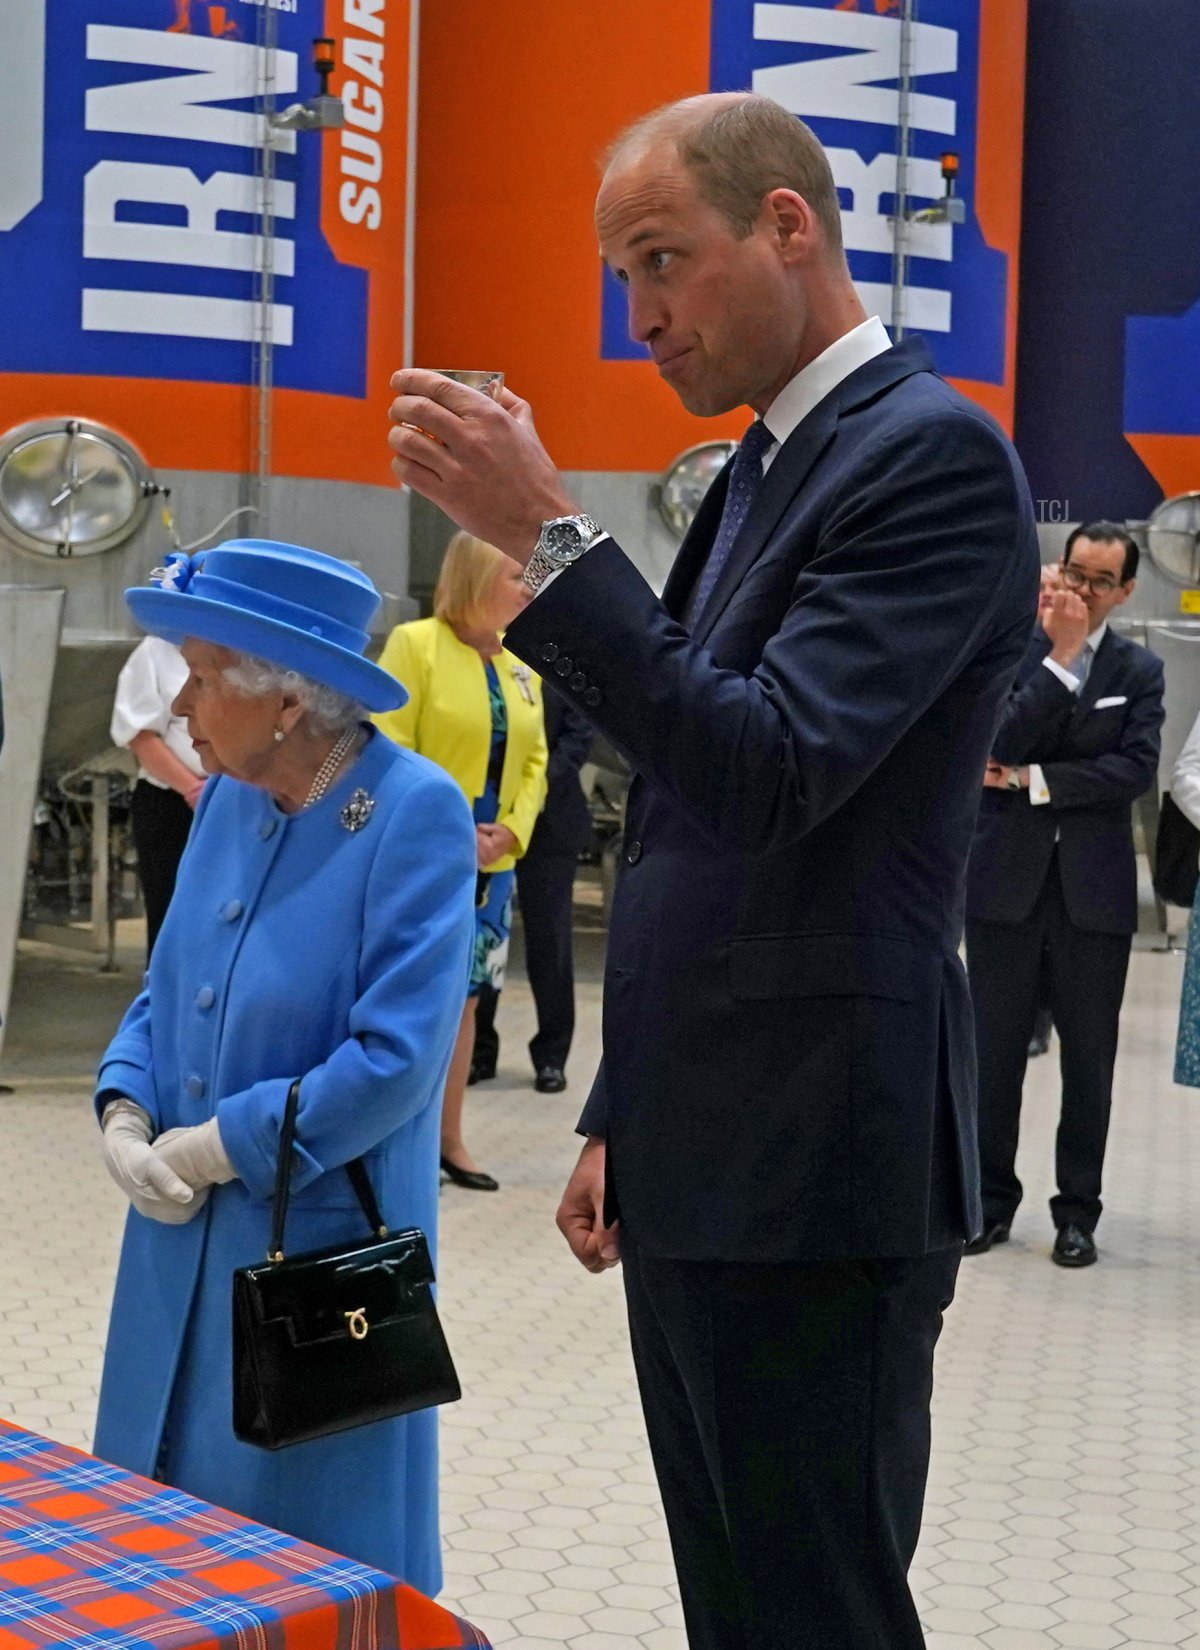 Britain's Prince William, Duke of Cambridge (R) reacts while sampling Irn-Bru as he and Britain's Queen Elizabeth II visit AG Barr's factory in Cumbernauld, east of Glasgow, where the Irn-Bru drink is manufactured on June 28, 2021